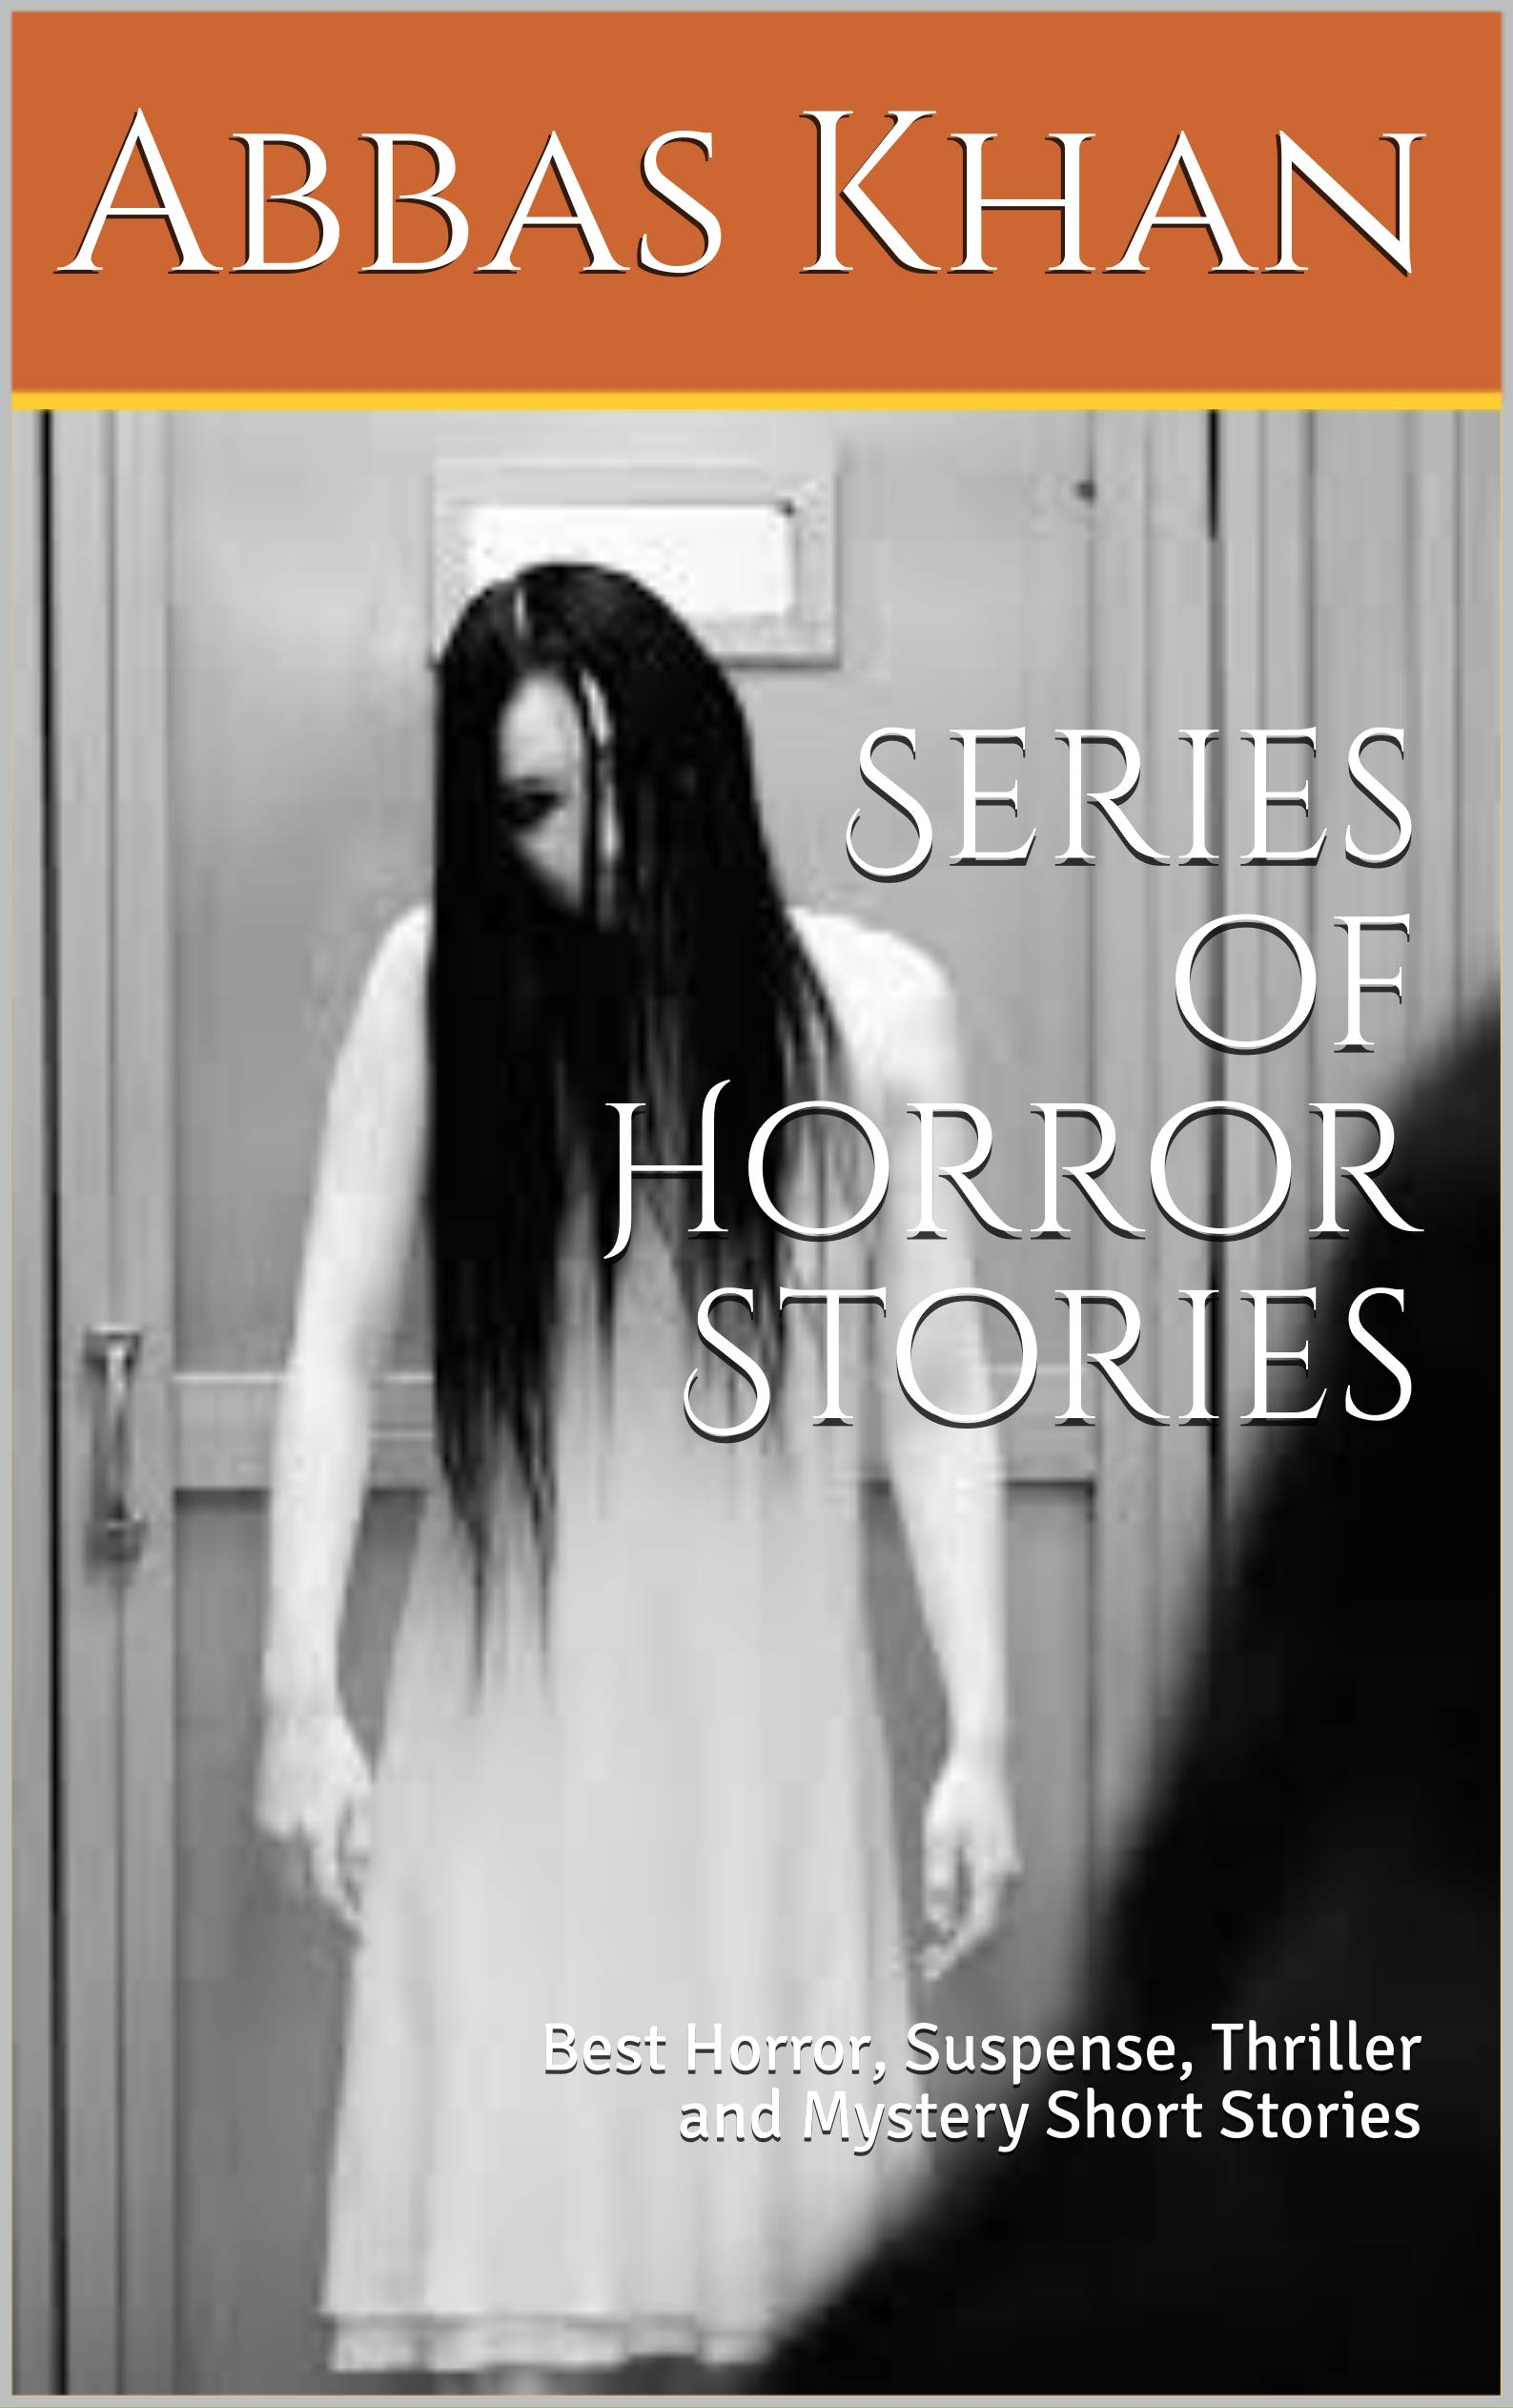 Series of Horror Stories: Best Horror, Suspense, Thriller and Mystery Short Stories